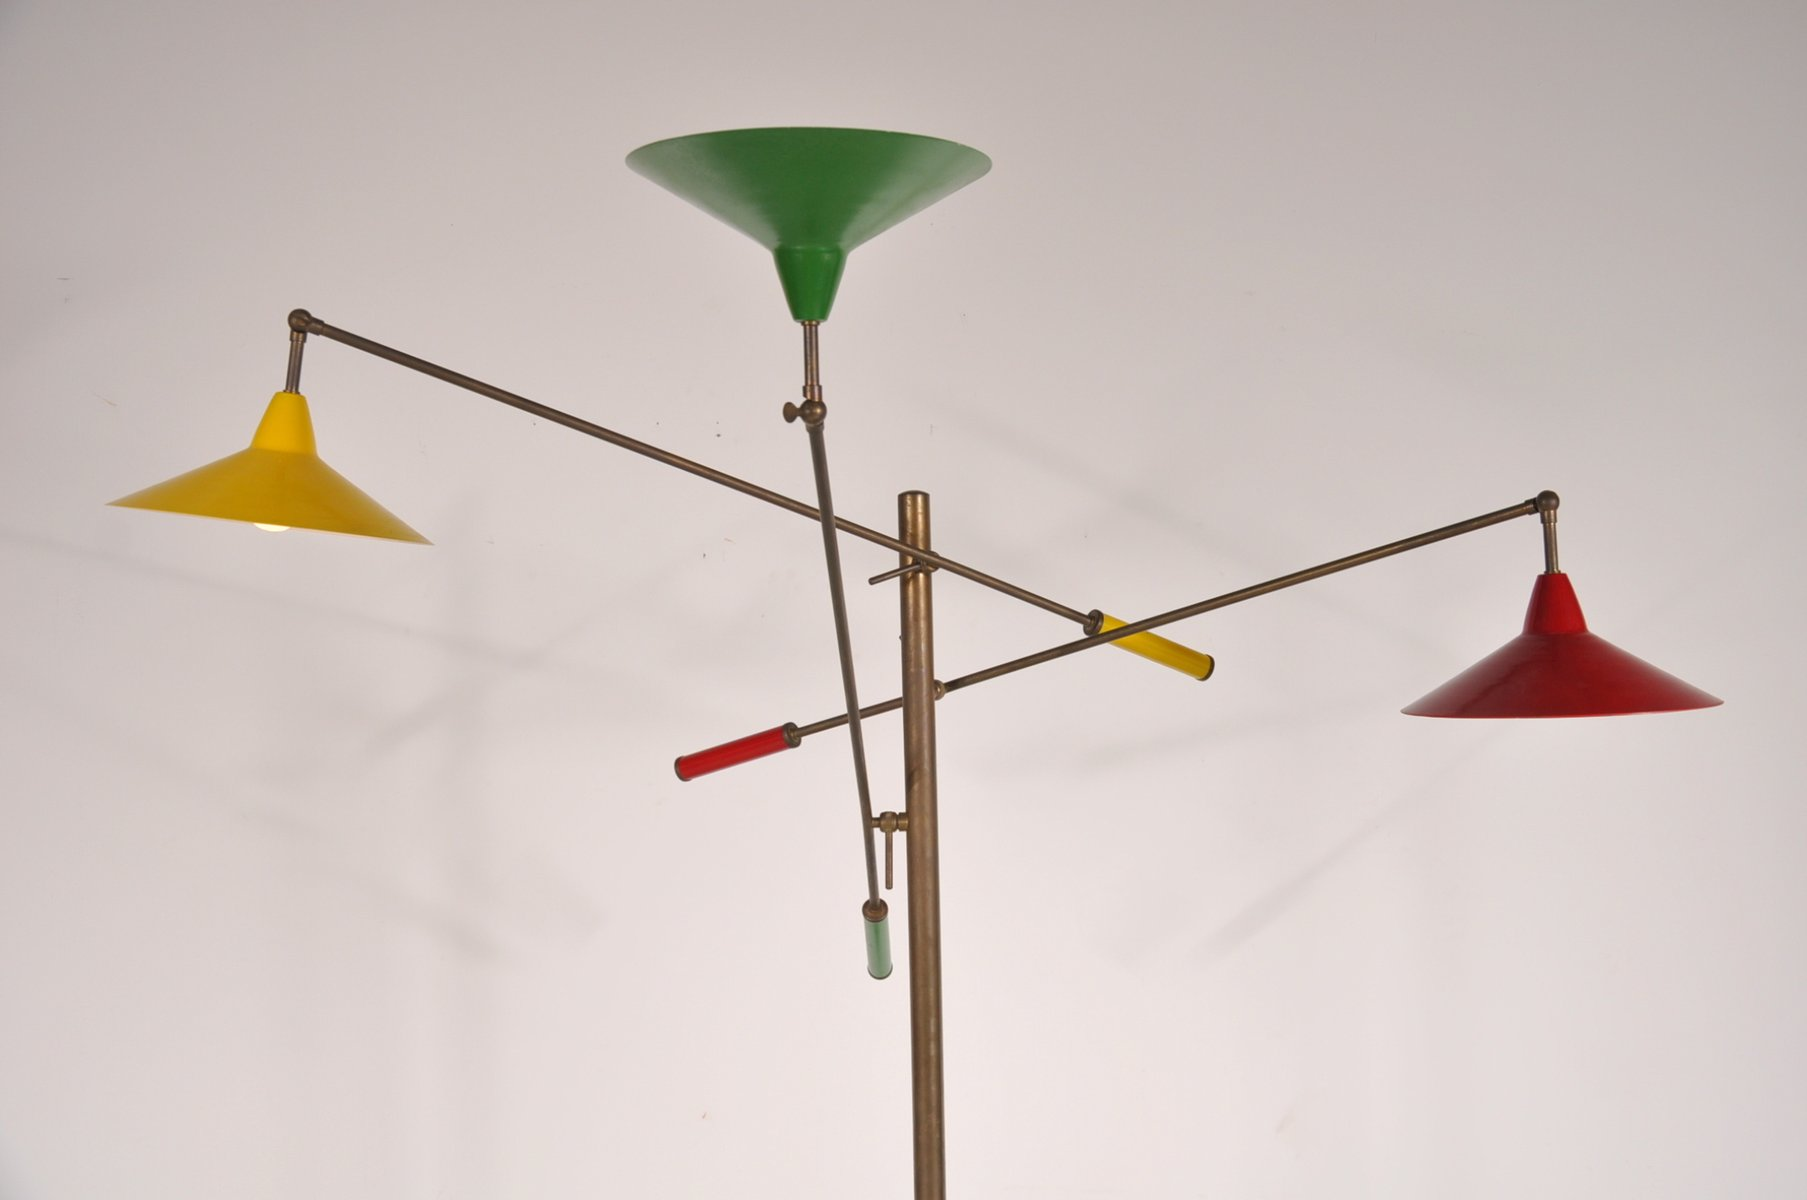 Triennale floor lamp from arredoluce 1950s for sale at pamono for Arredo luce